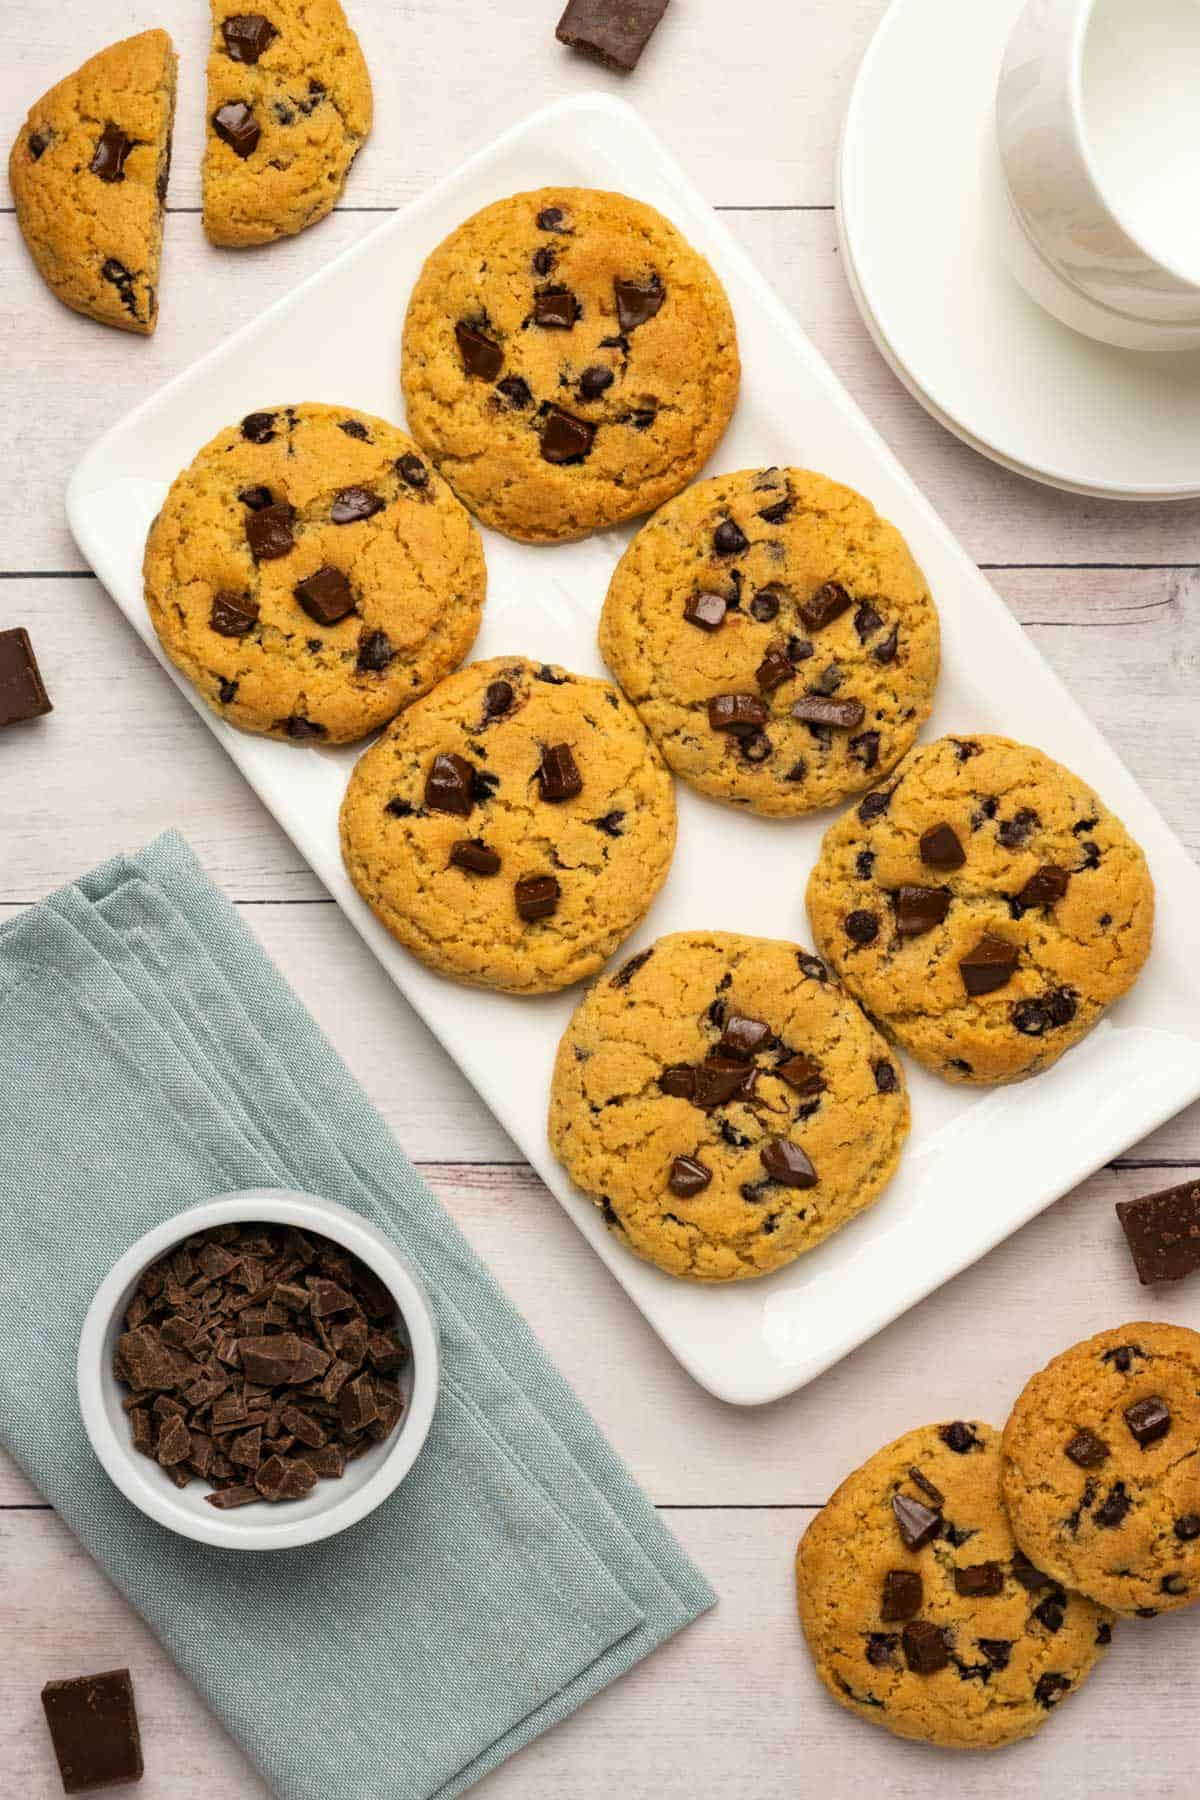 Chocolate chip cookies on a white plate.